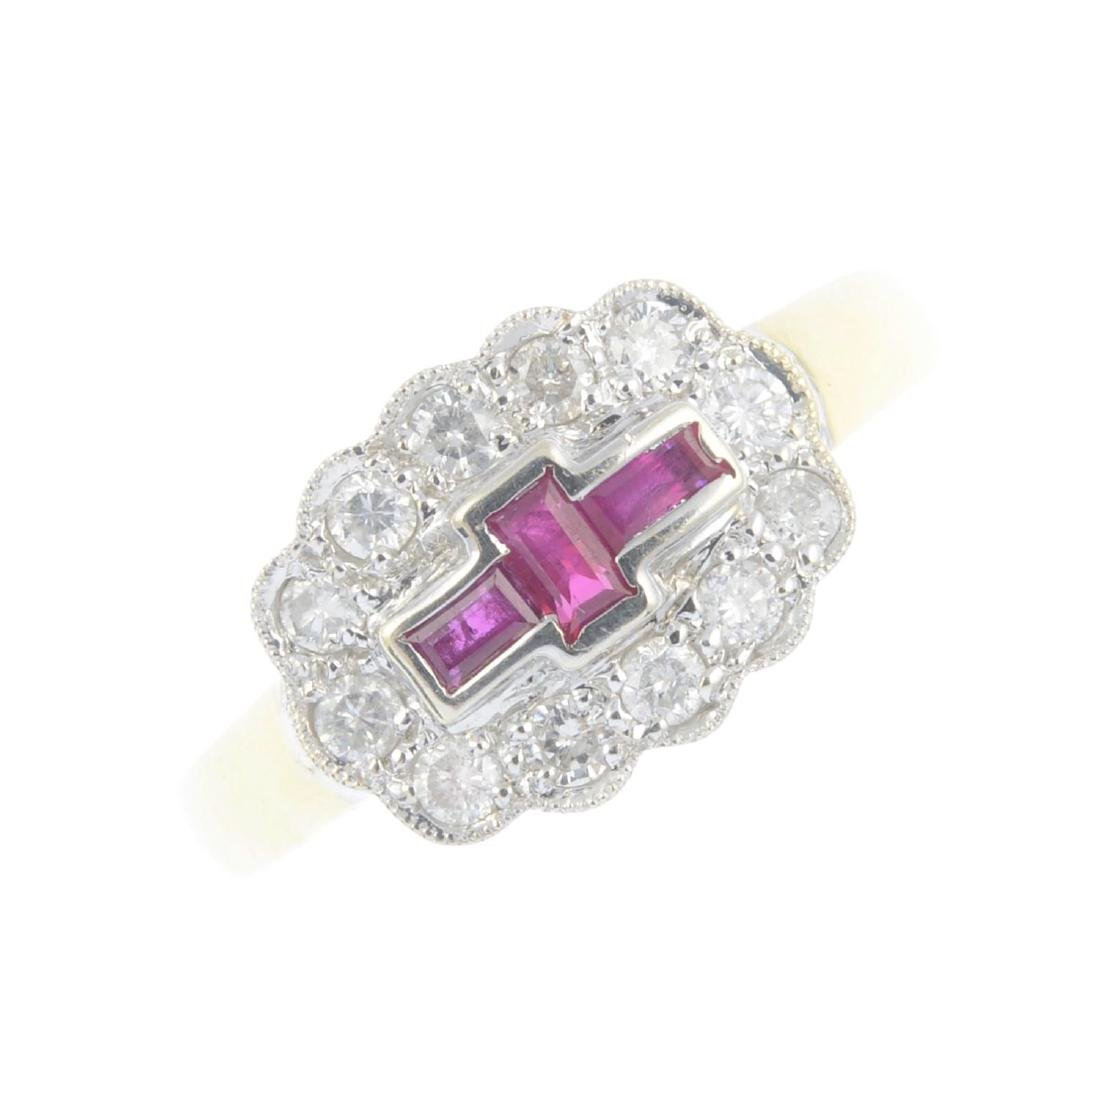 An 18ct gold ruby and diamond dress ring. Designed as a